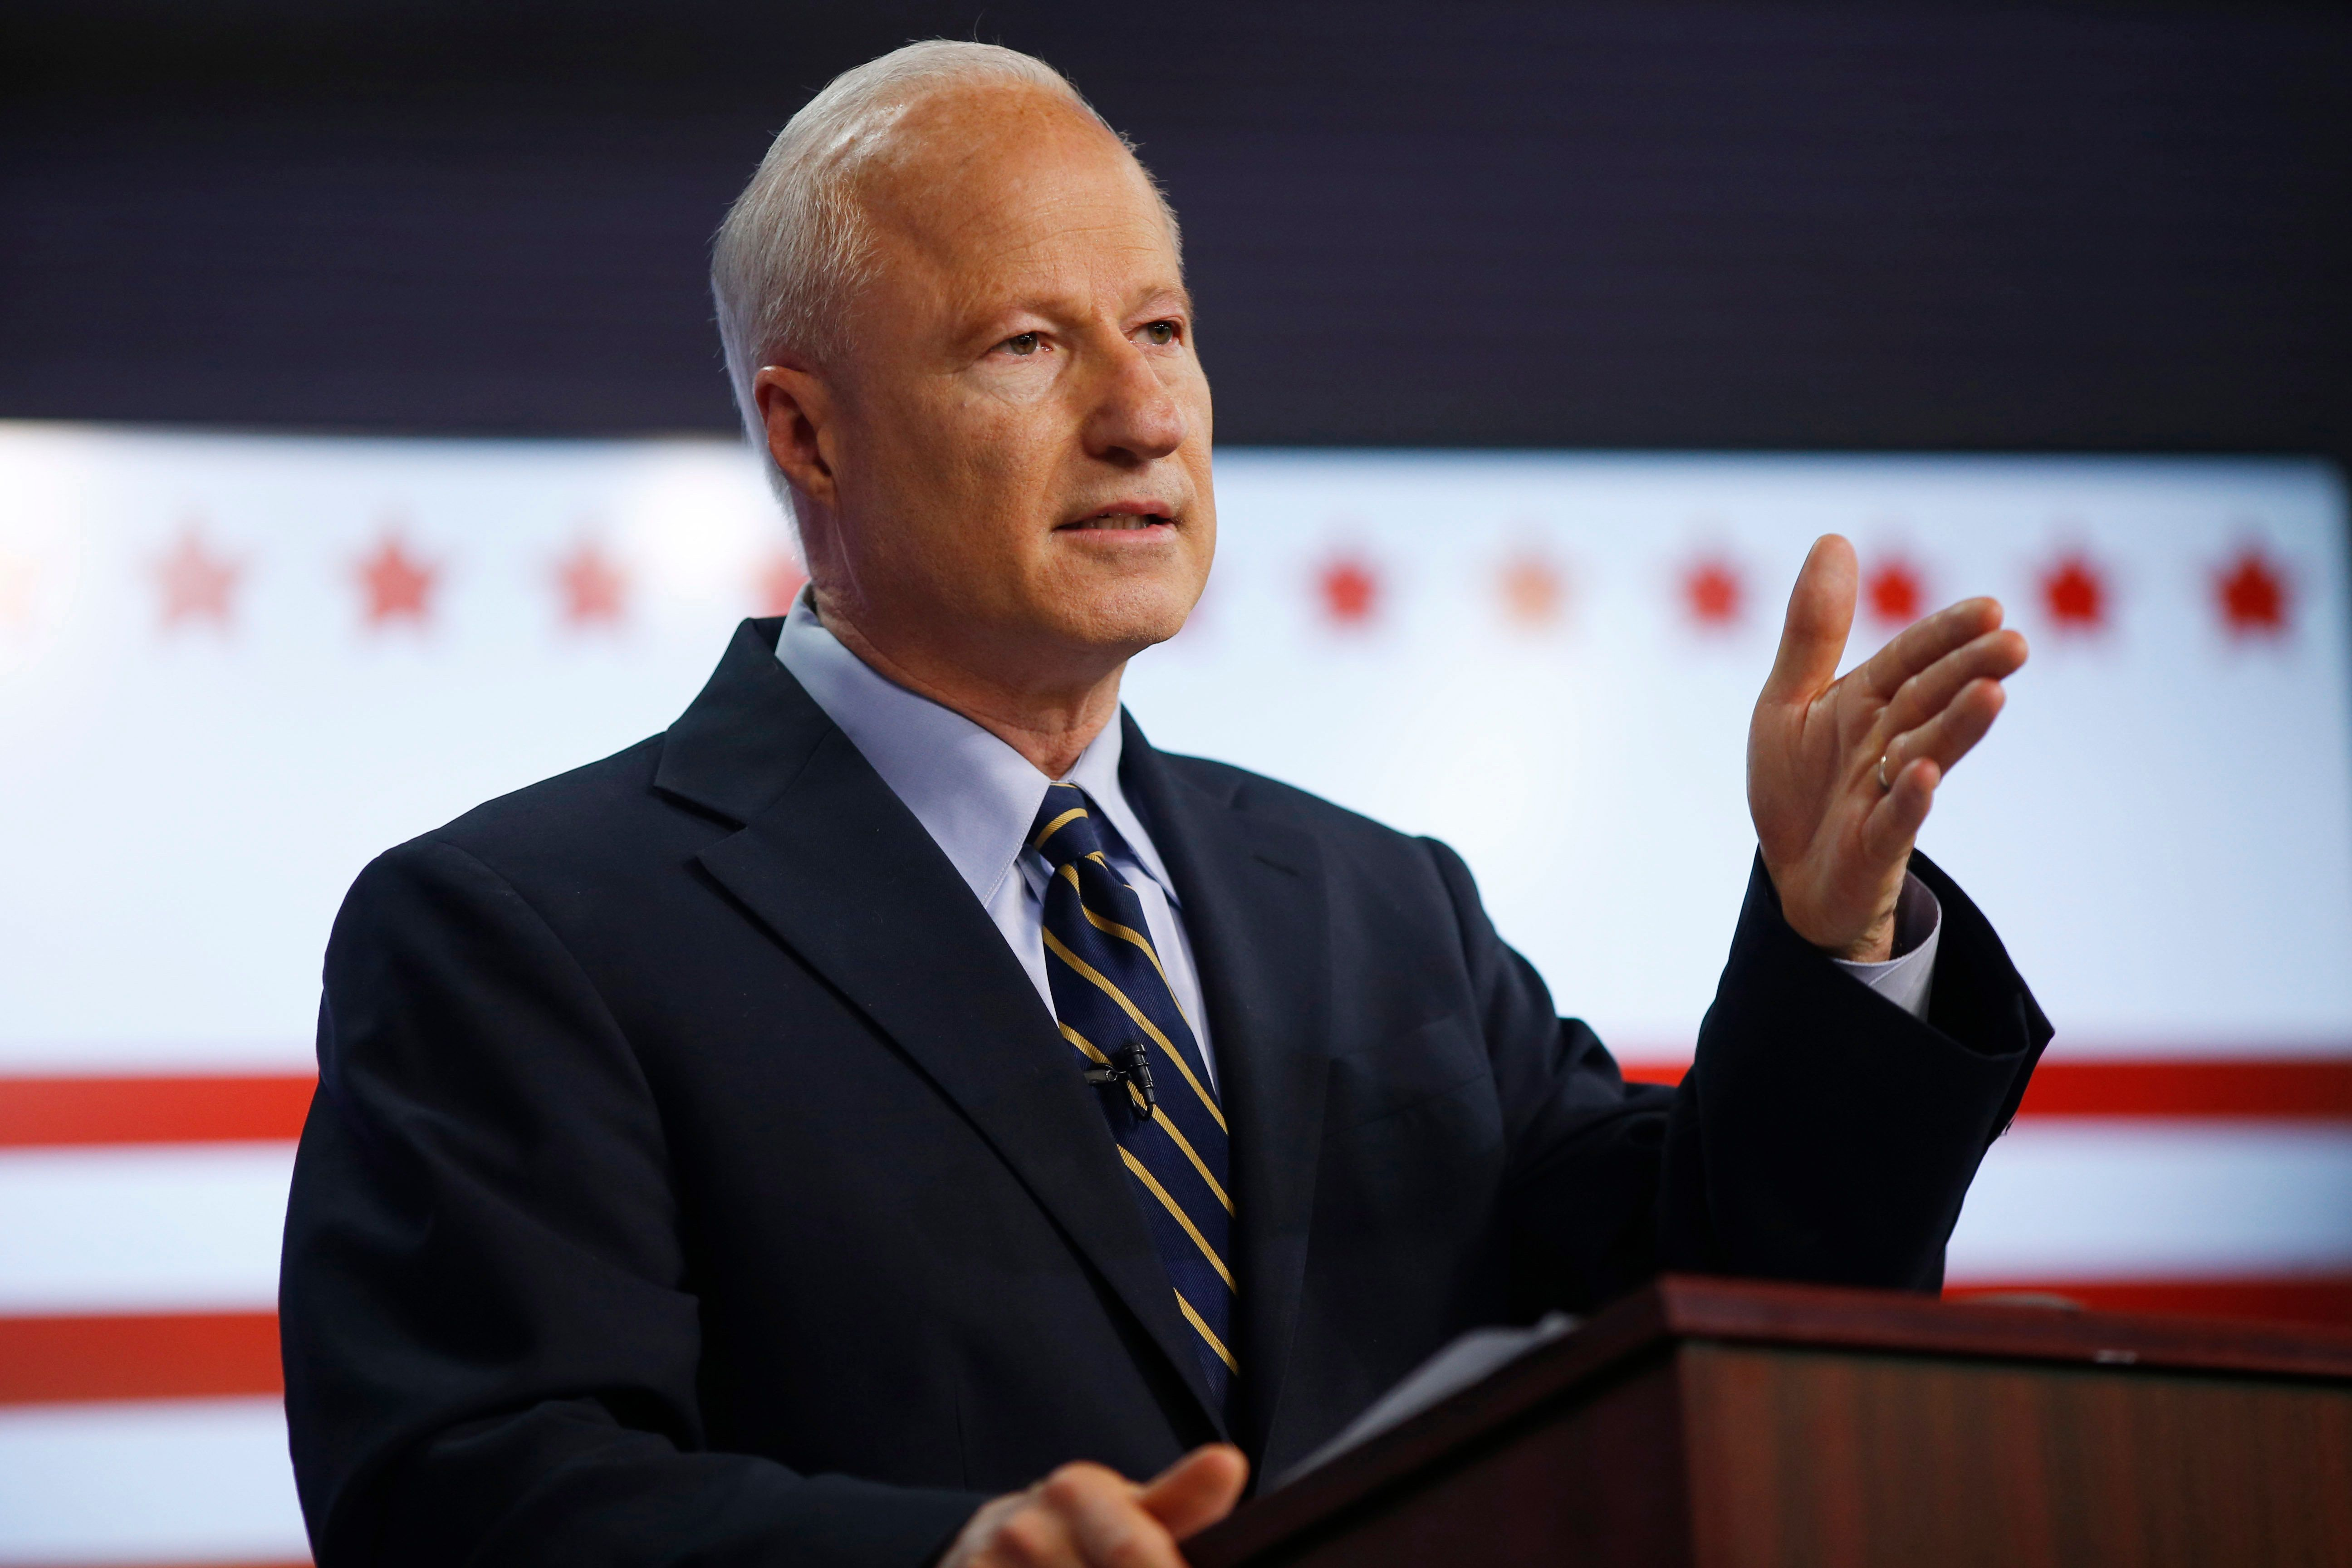 In this Tuesday, Oct. 4, 2016, photo, U.S. Congressman Mike Coffman, R-Colo., makes a point during a debate with his opponent for Colorado's 6th Congressional District seat, Democrat Morgan Carroll, at a Spanish language television station in Denver. (AP Photo/David Zalubowski)